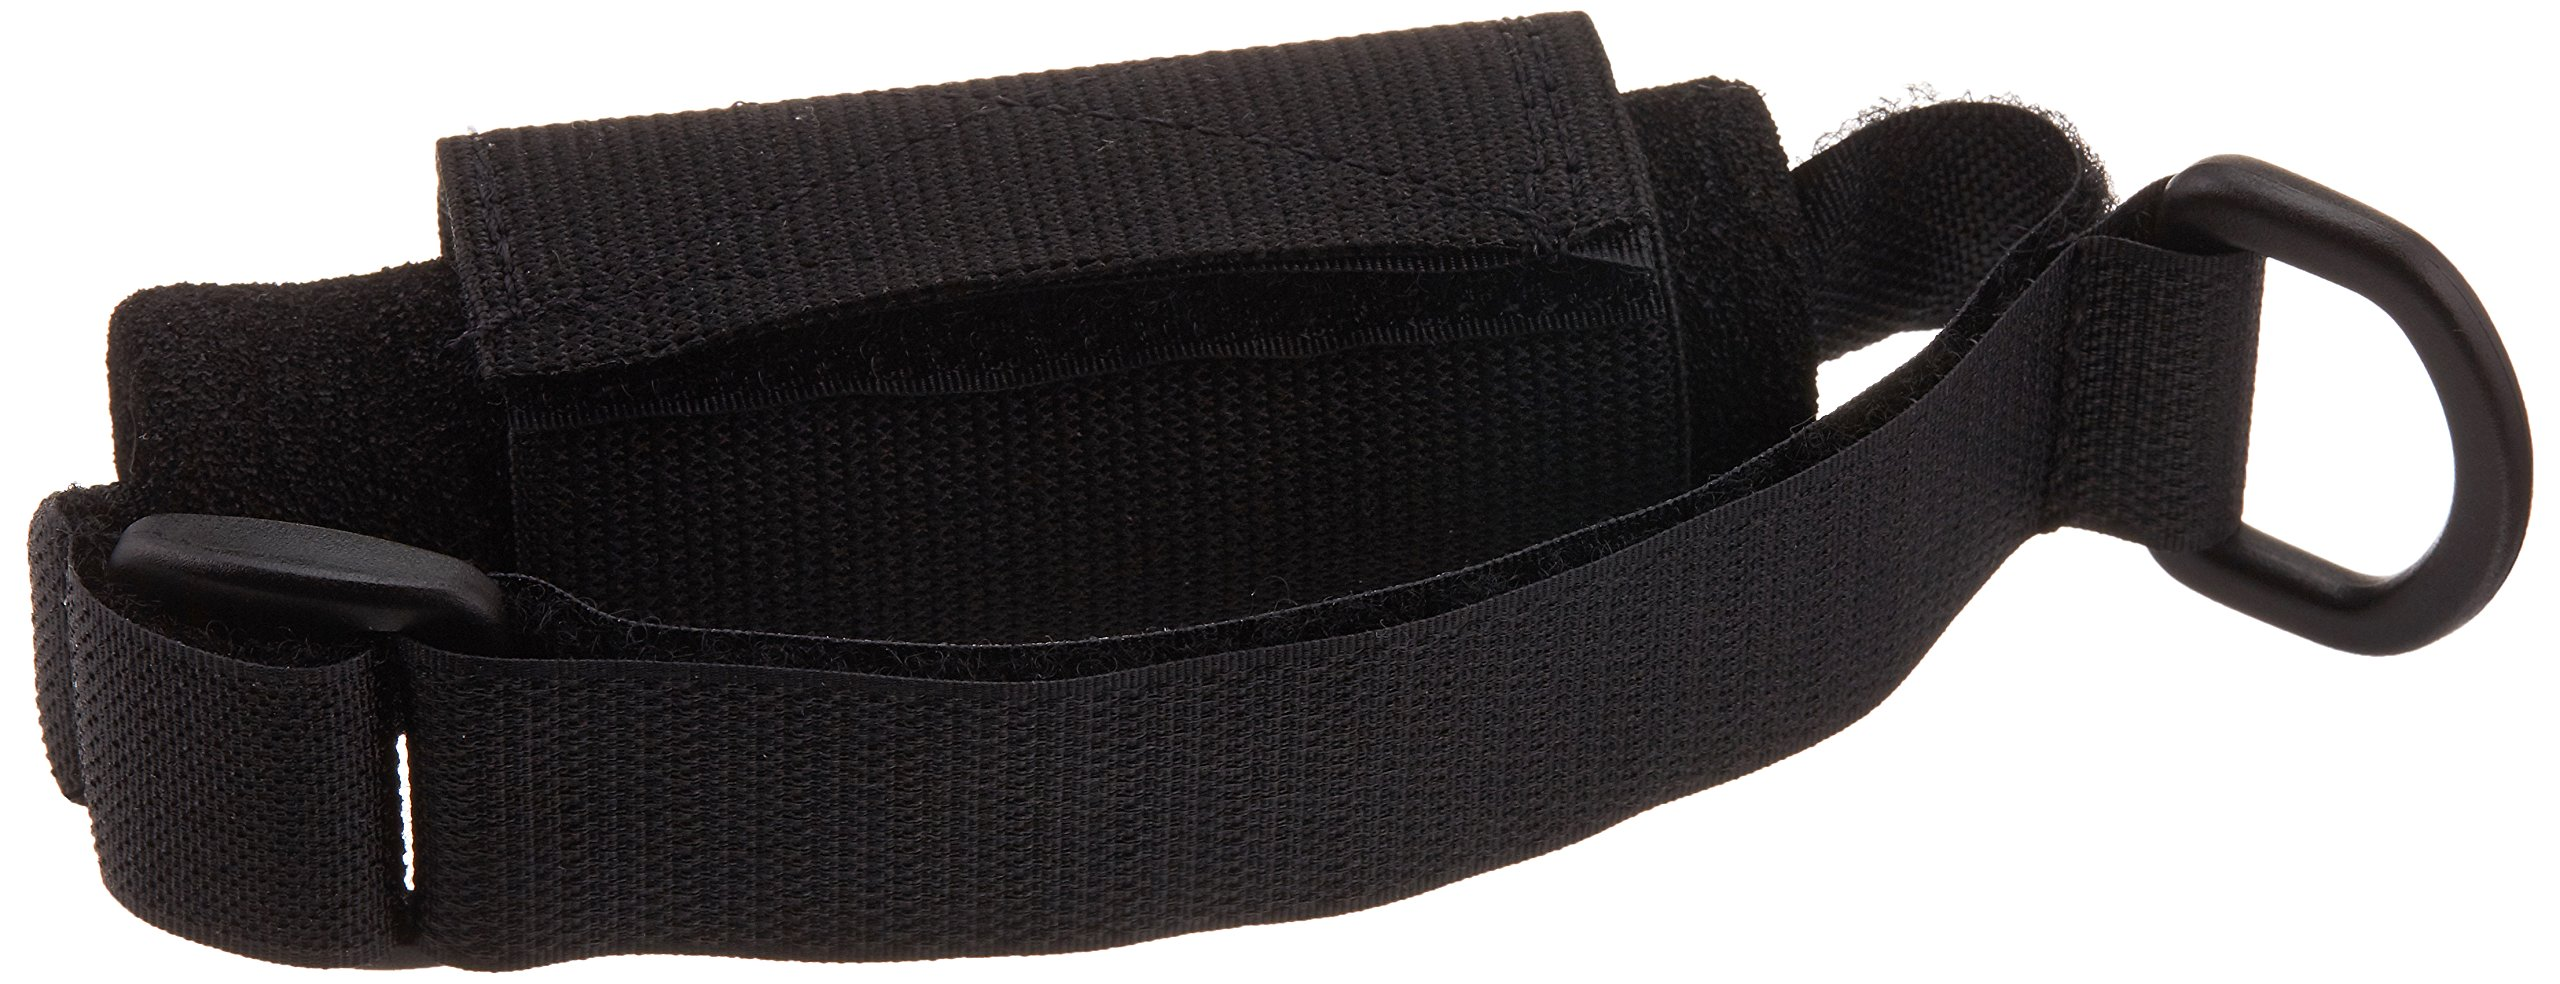 Sammons Preston Universal Holder Strap for Elderly, Hand Cuff with Pocket for Holding Cutlery, Pens, Toothbrushes, Daily Living Tools, Adjustable Velcro Implement Holder for Weak Grip and Arthritis